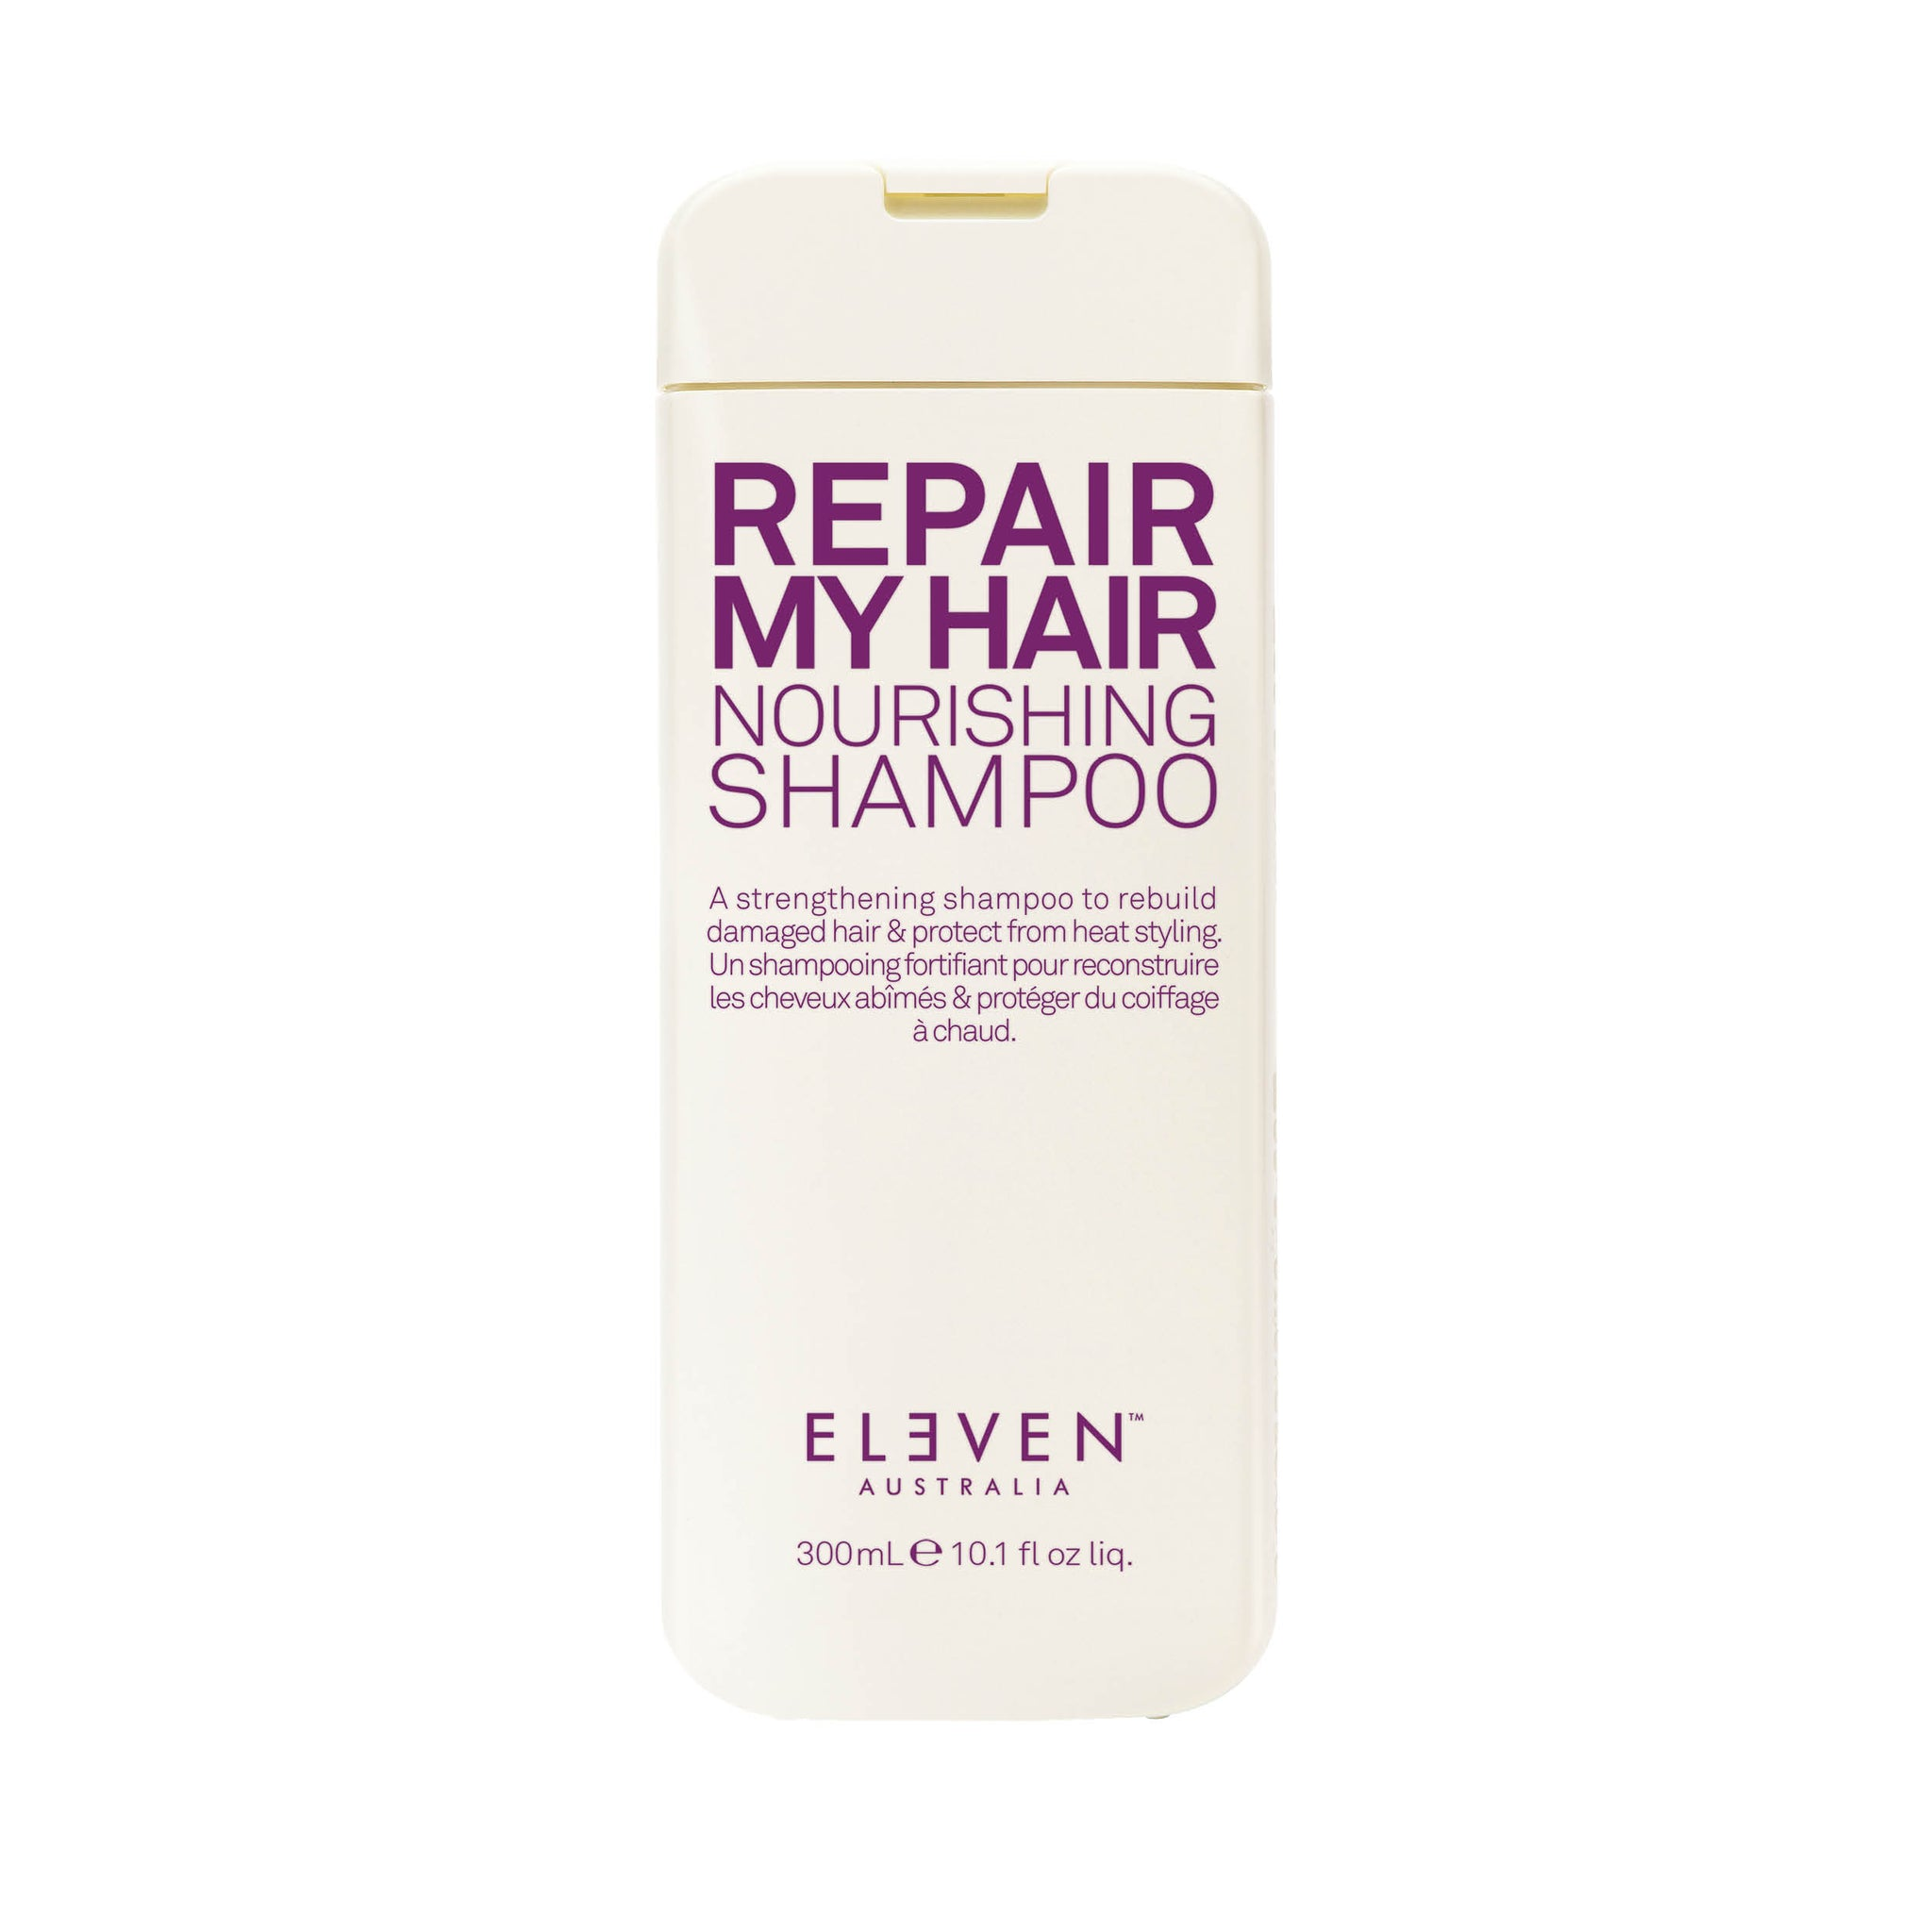 ELEVEN Repair My Hair Nourishing Shampoo